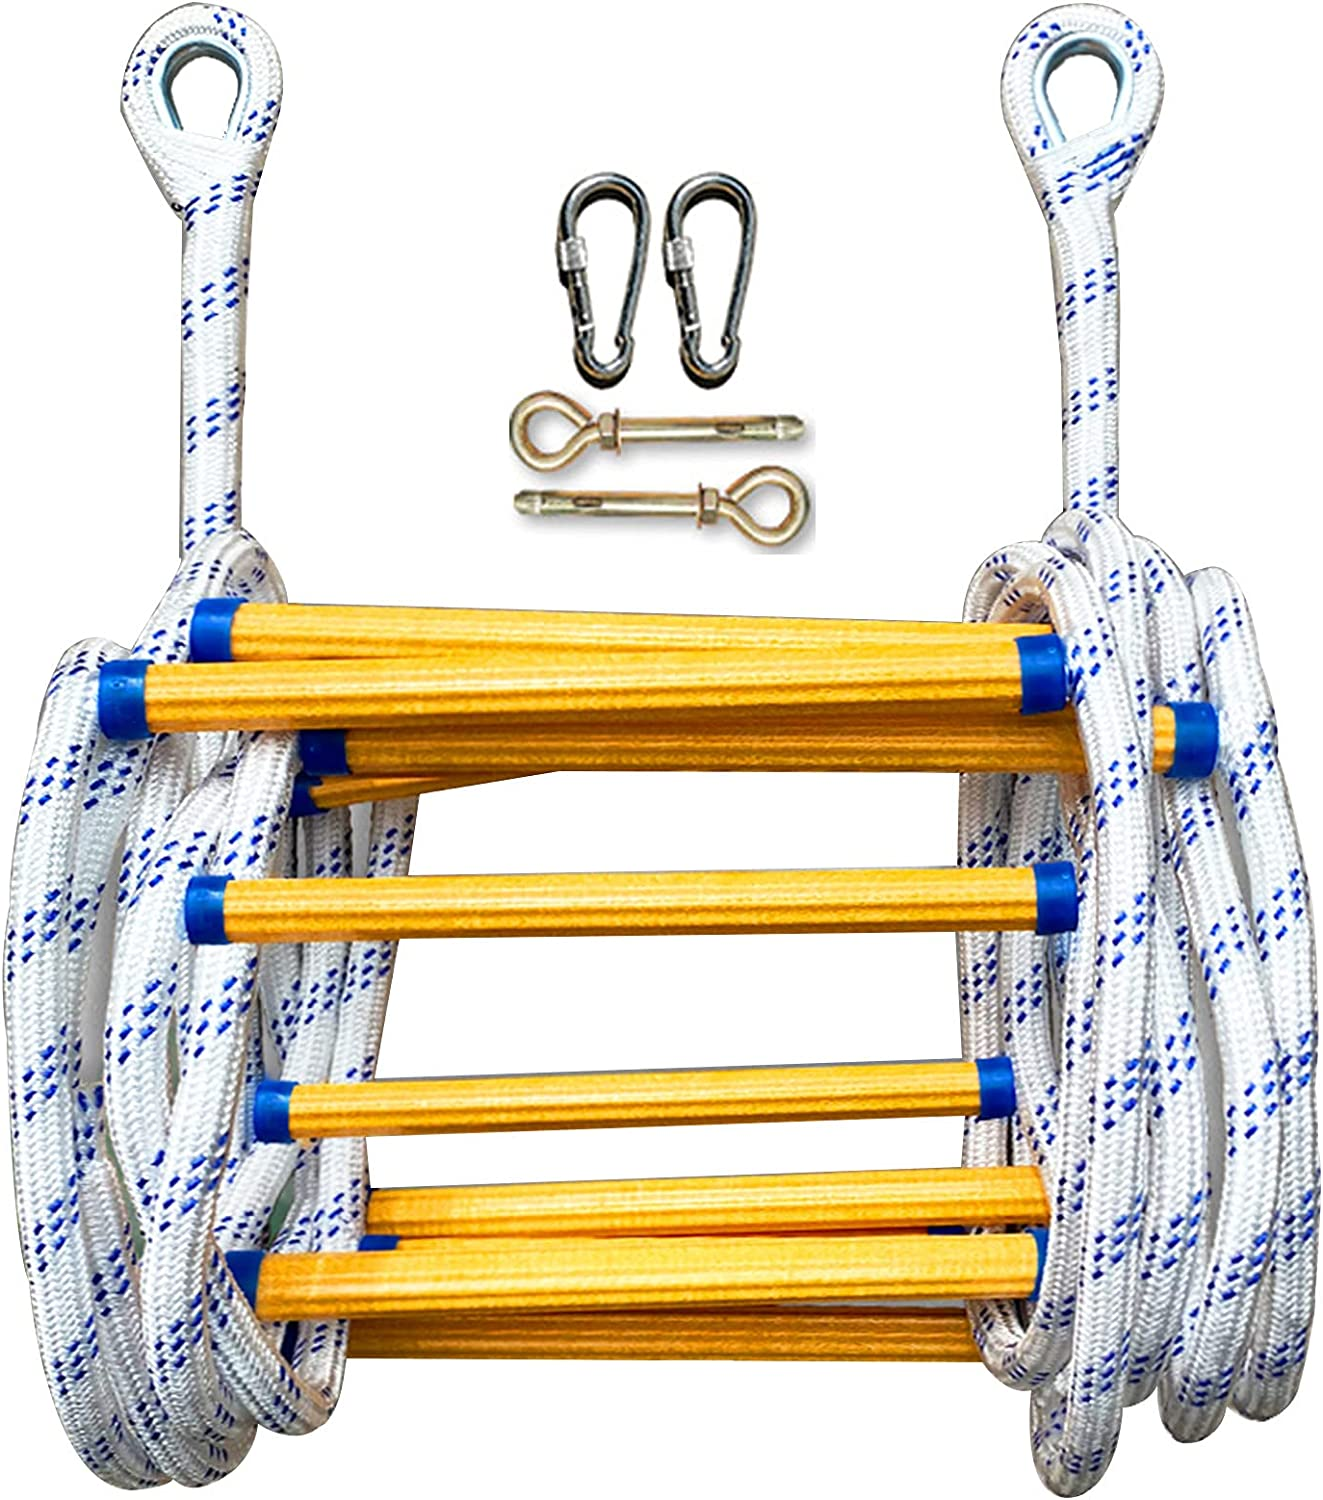 Emergency escape ladder Flame Branded Max 44% OFF goods retardant fire climbing ladde rope